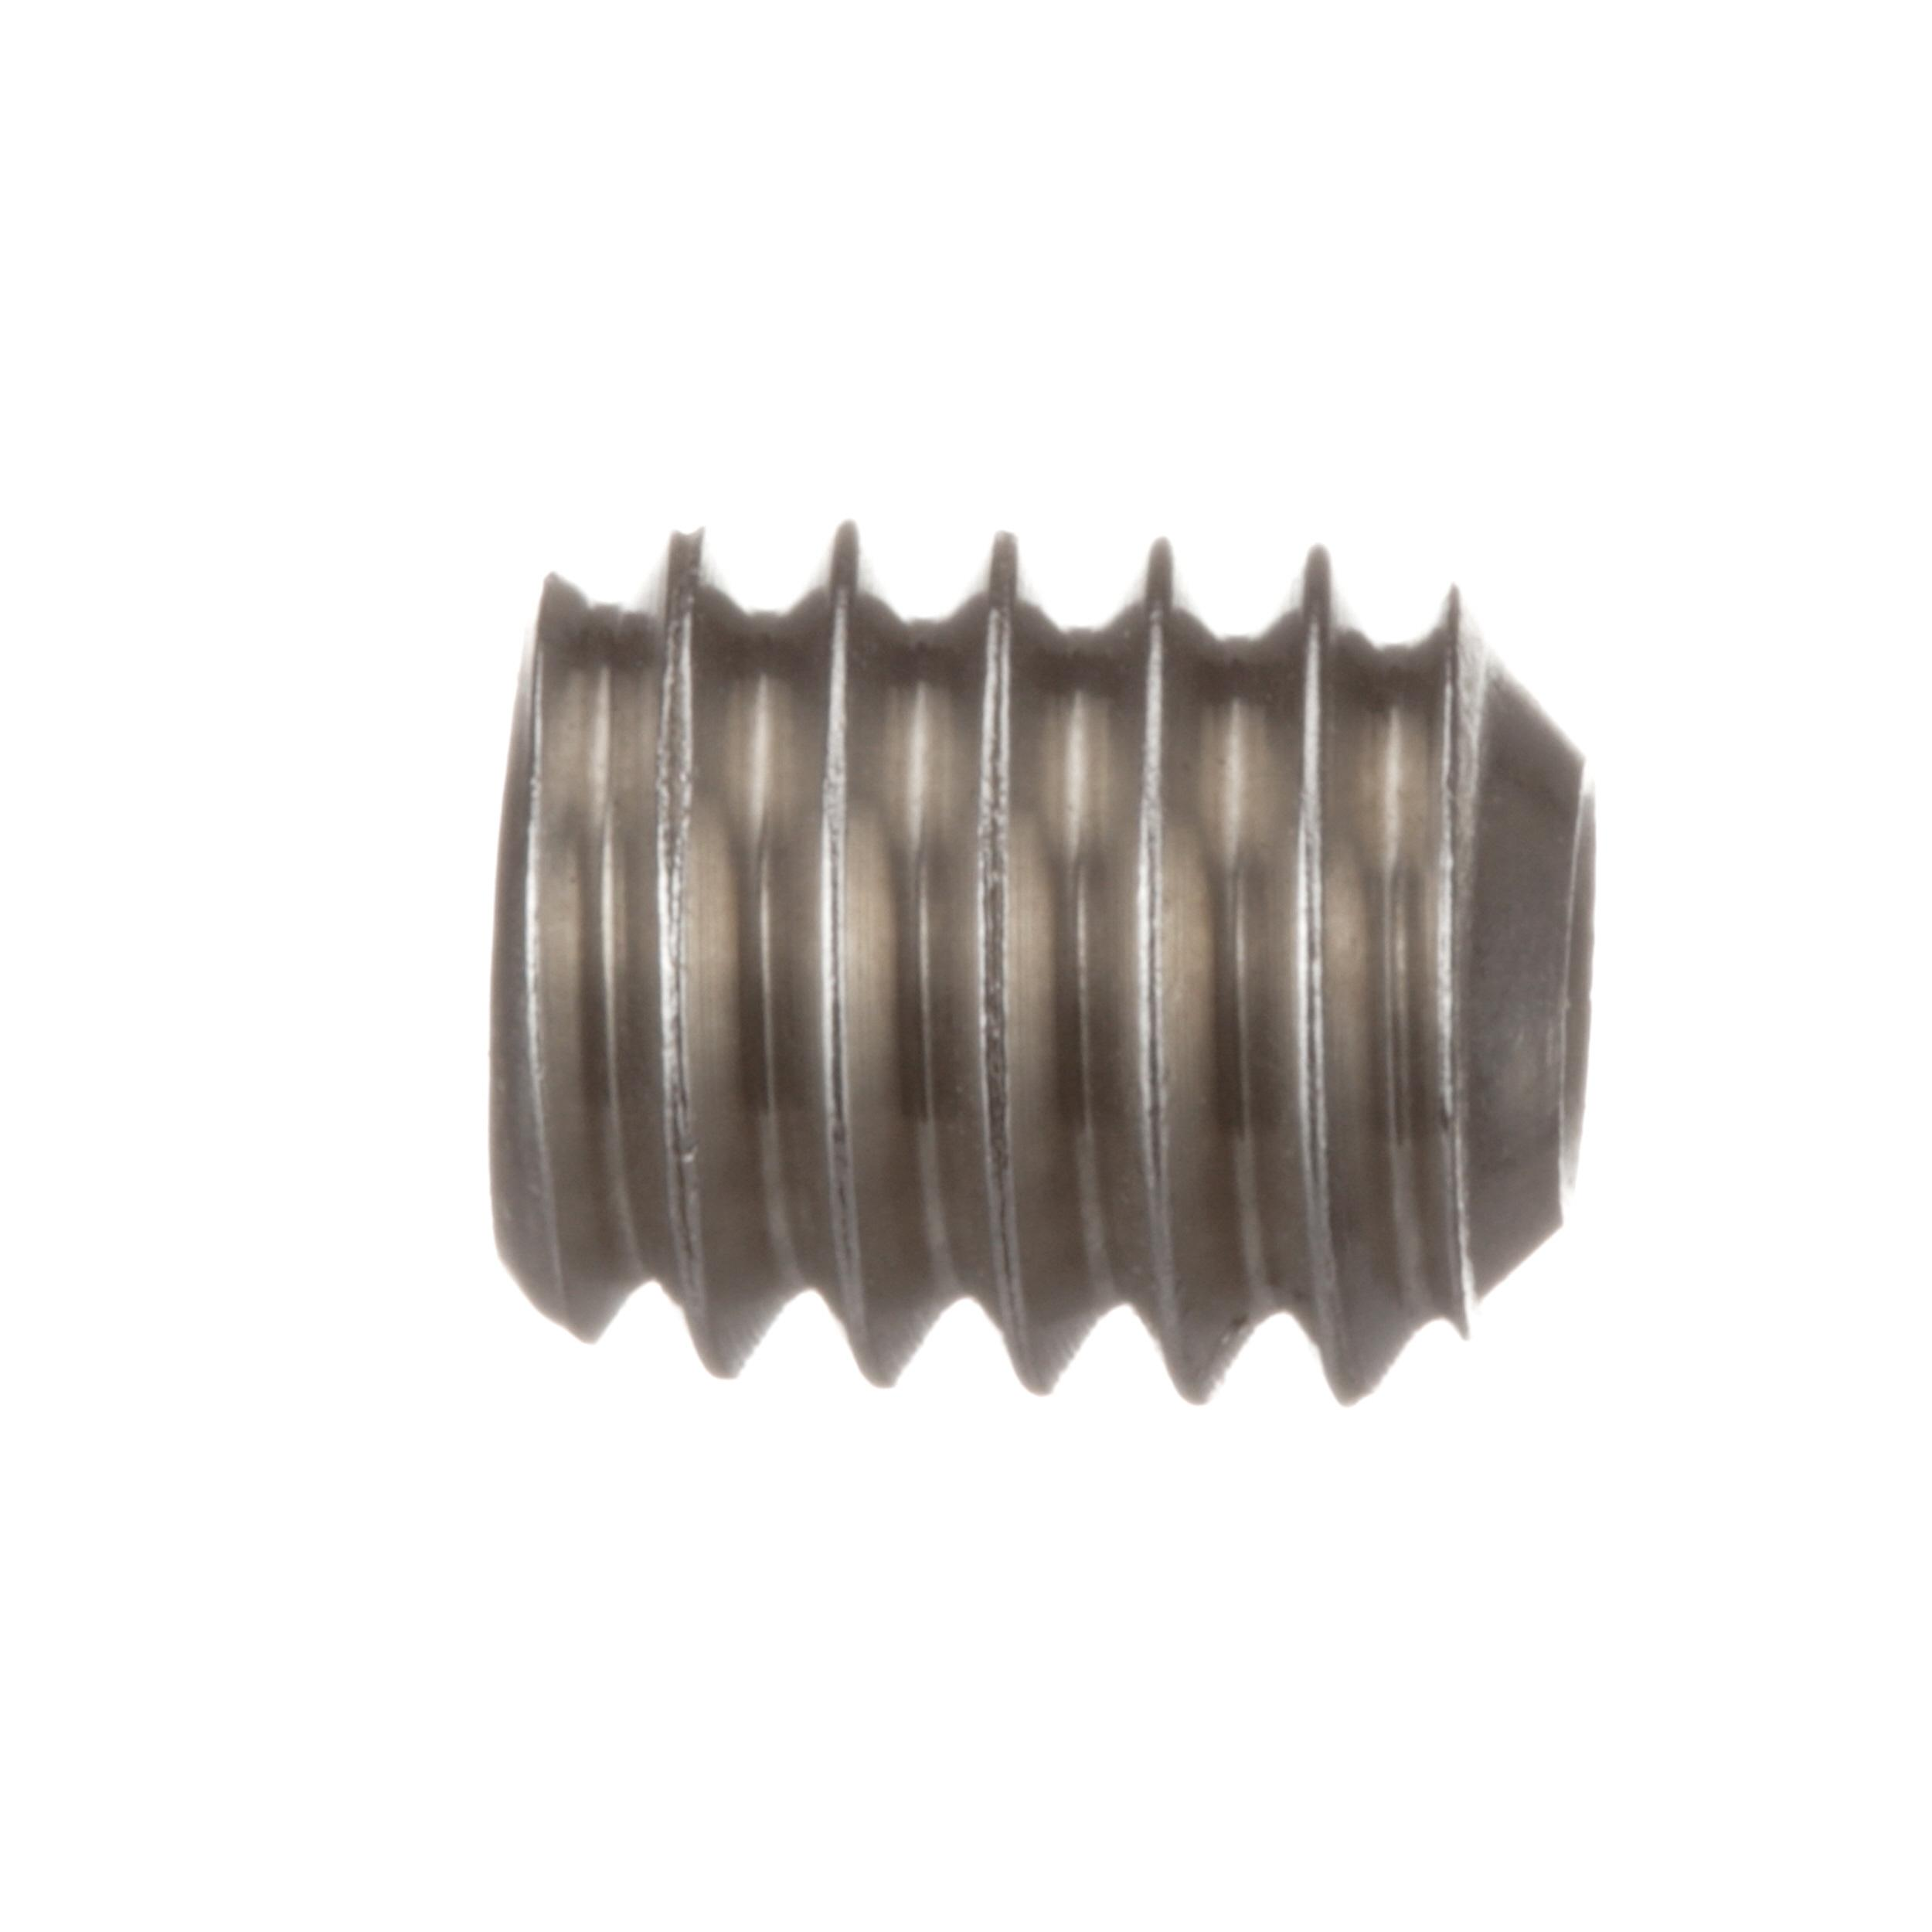 SOUTHBEND SET SCREW 5/16 X 18 X 3/8